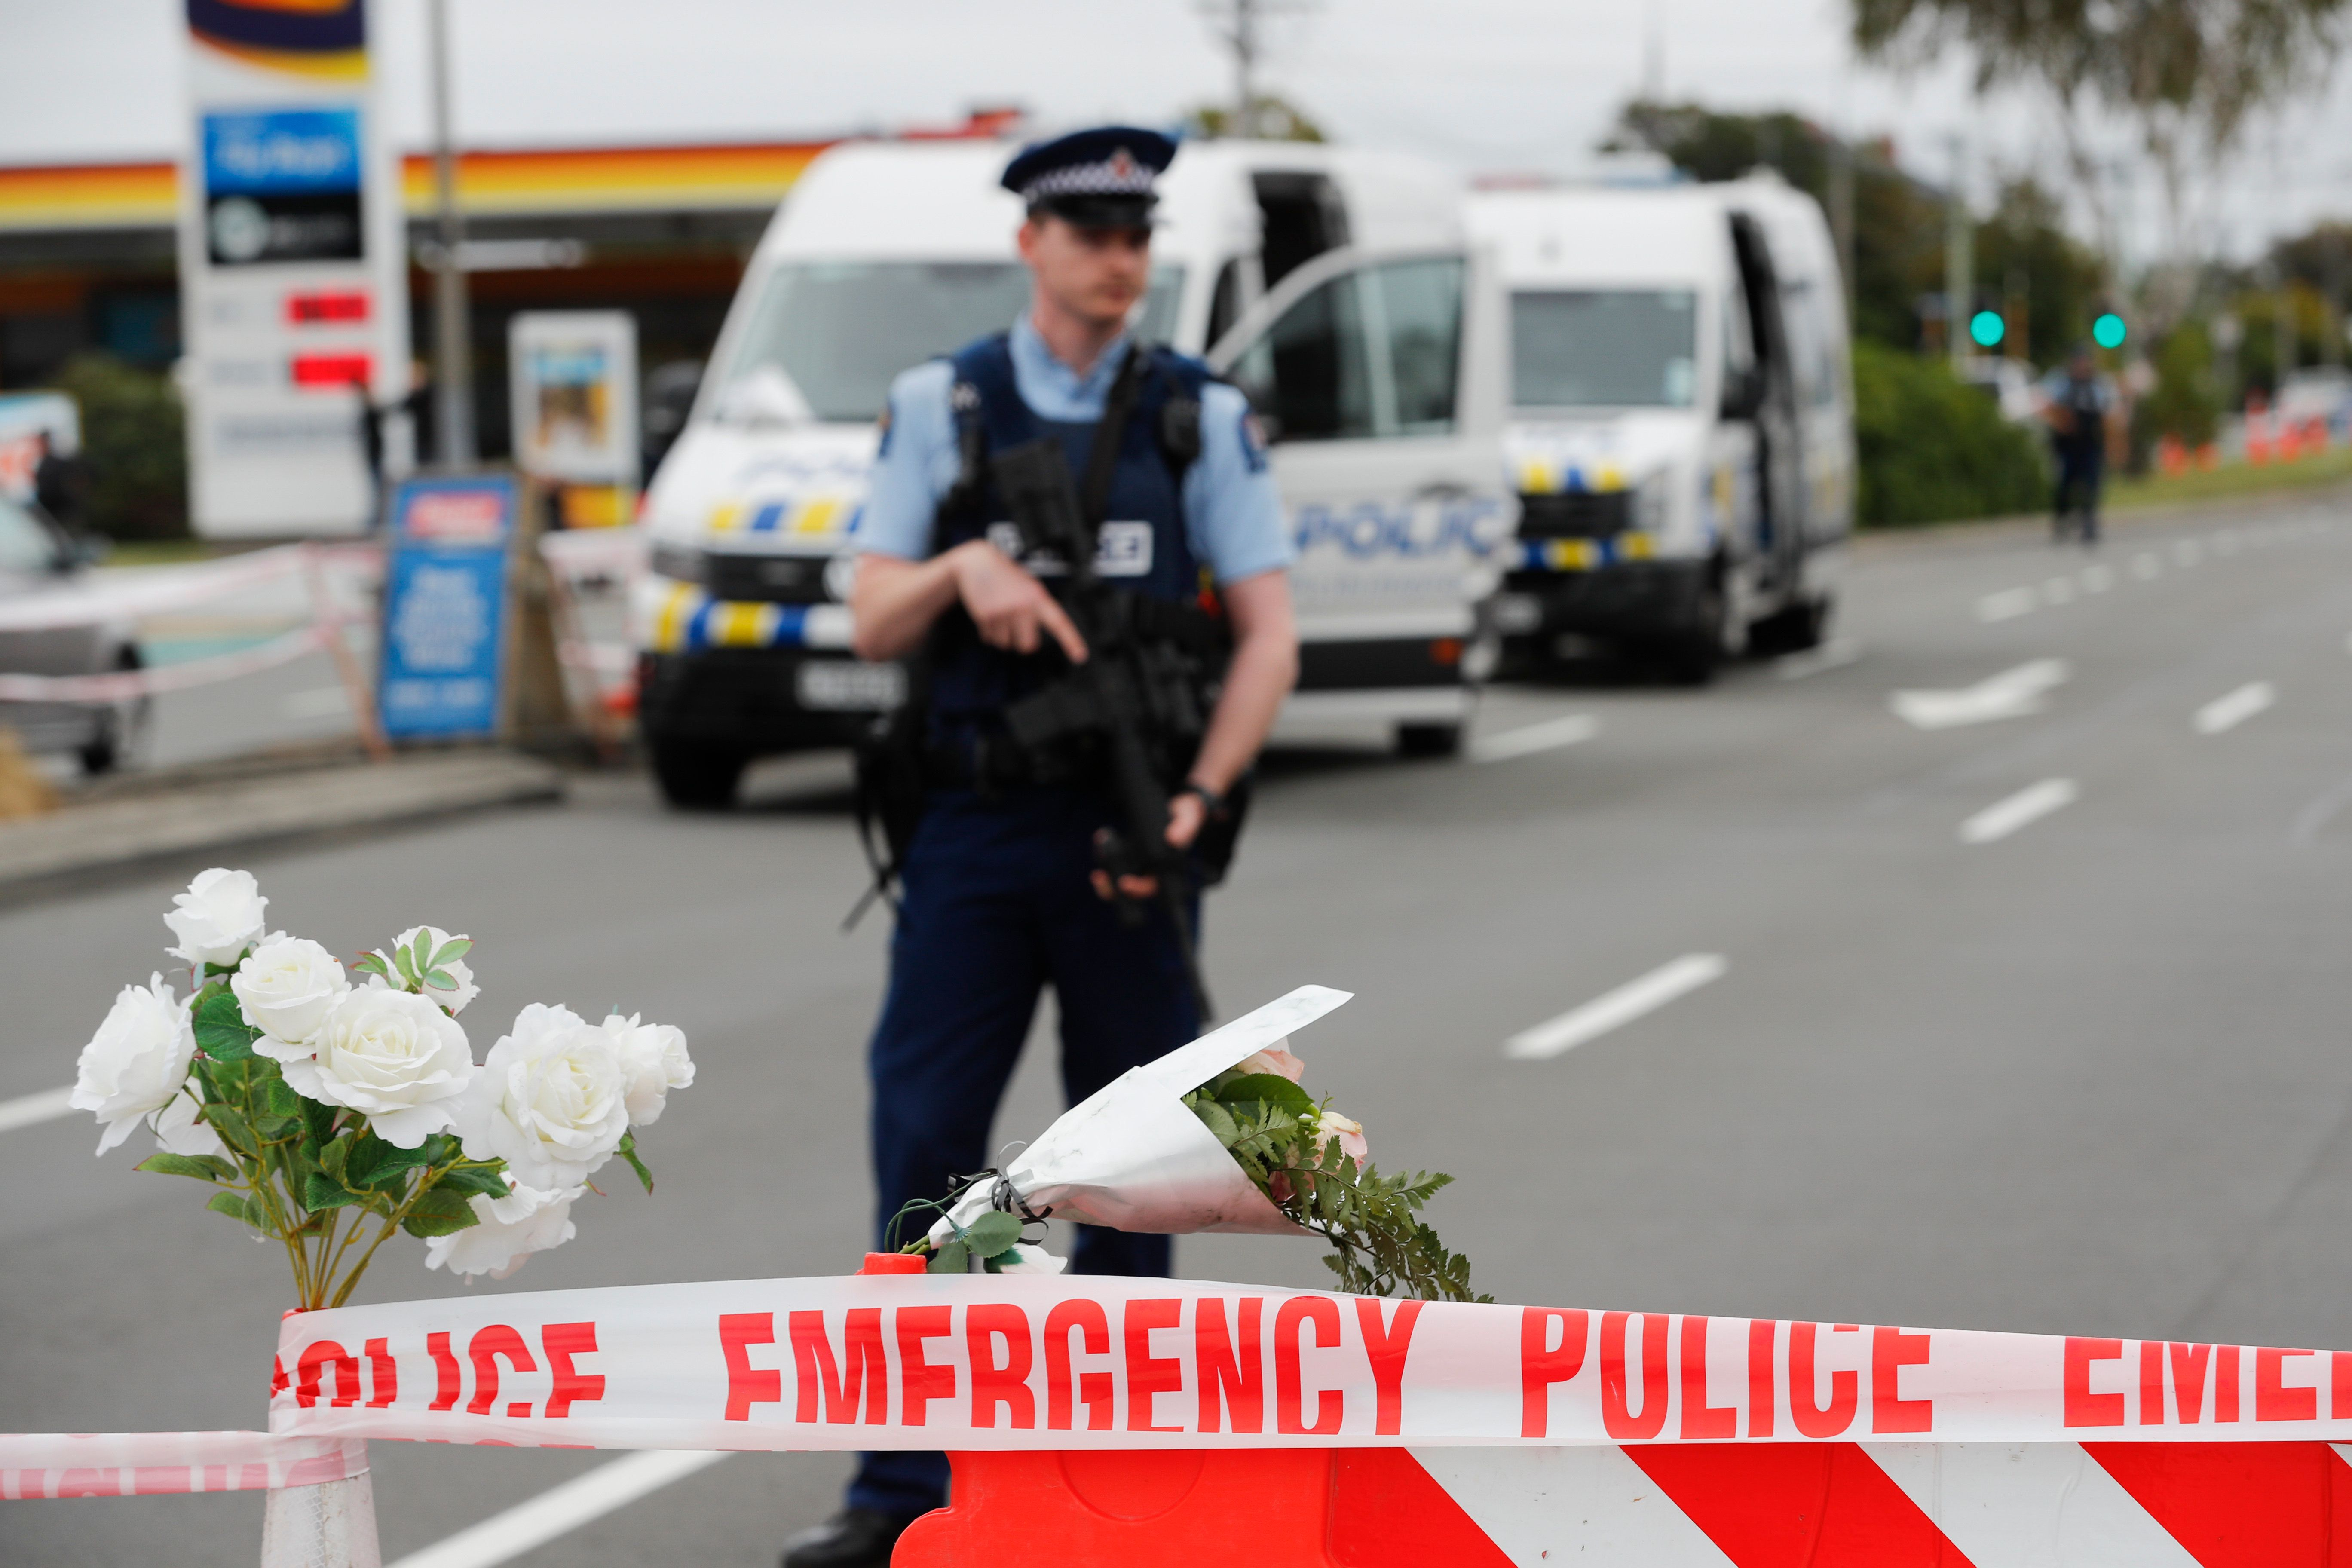 Facebook: Users Watched New Zealand Shooting In Real Time But No One Reported